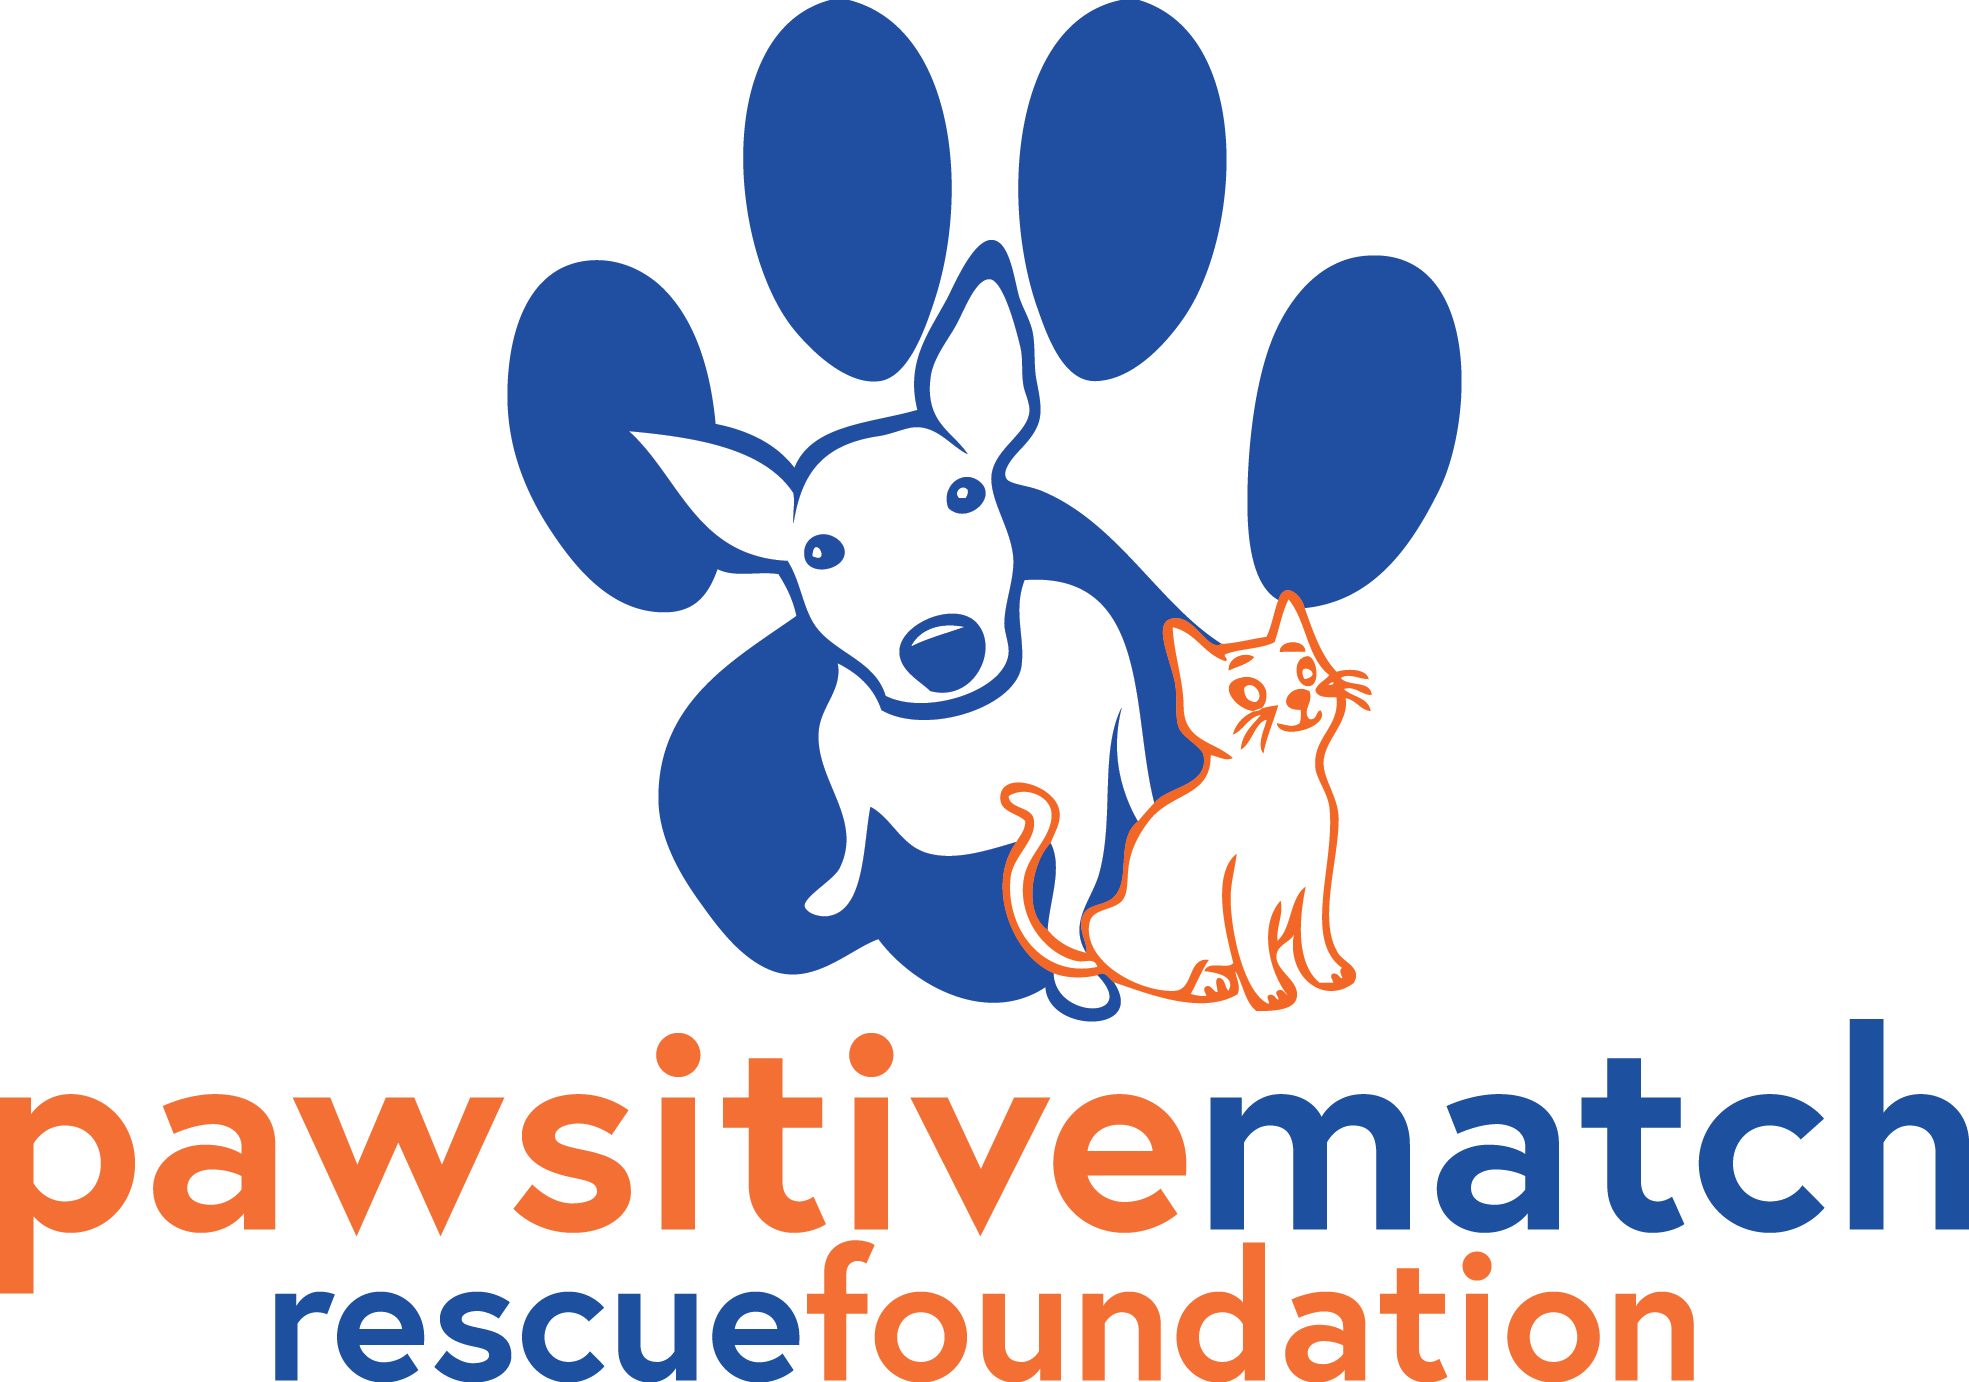 Pawsitive Match Rescue Foundation – Calgary Based Dog and Cat Rescue